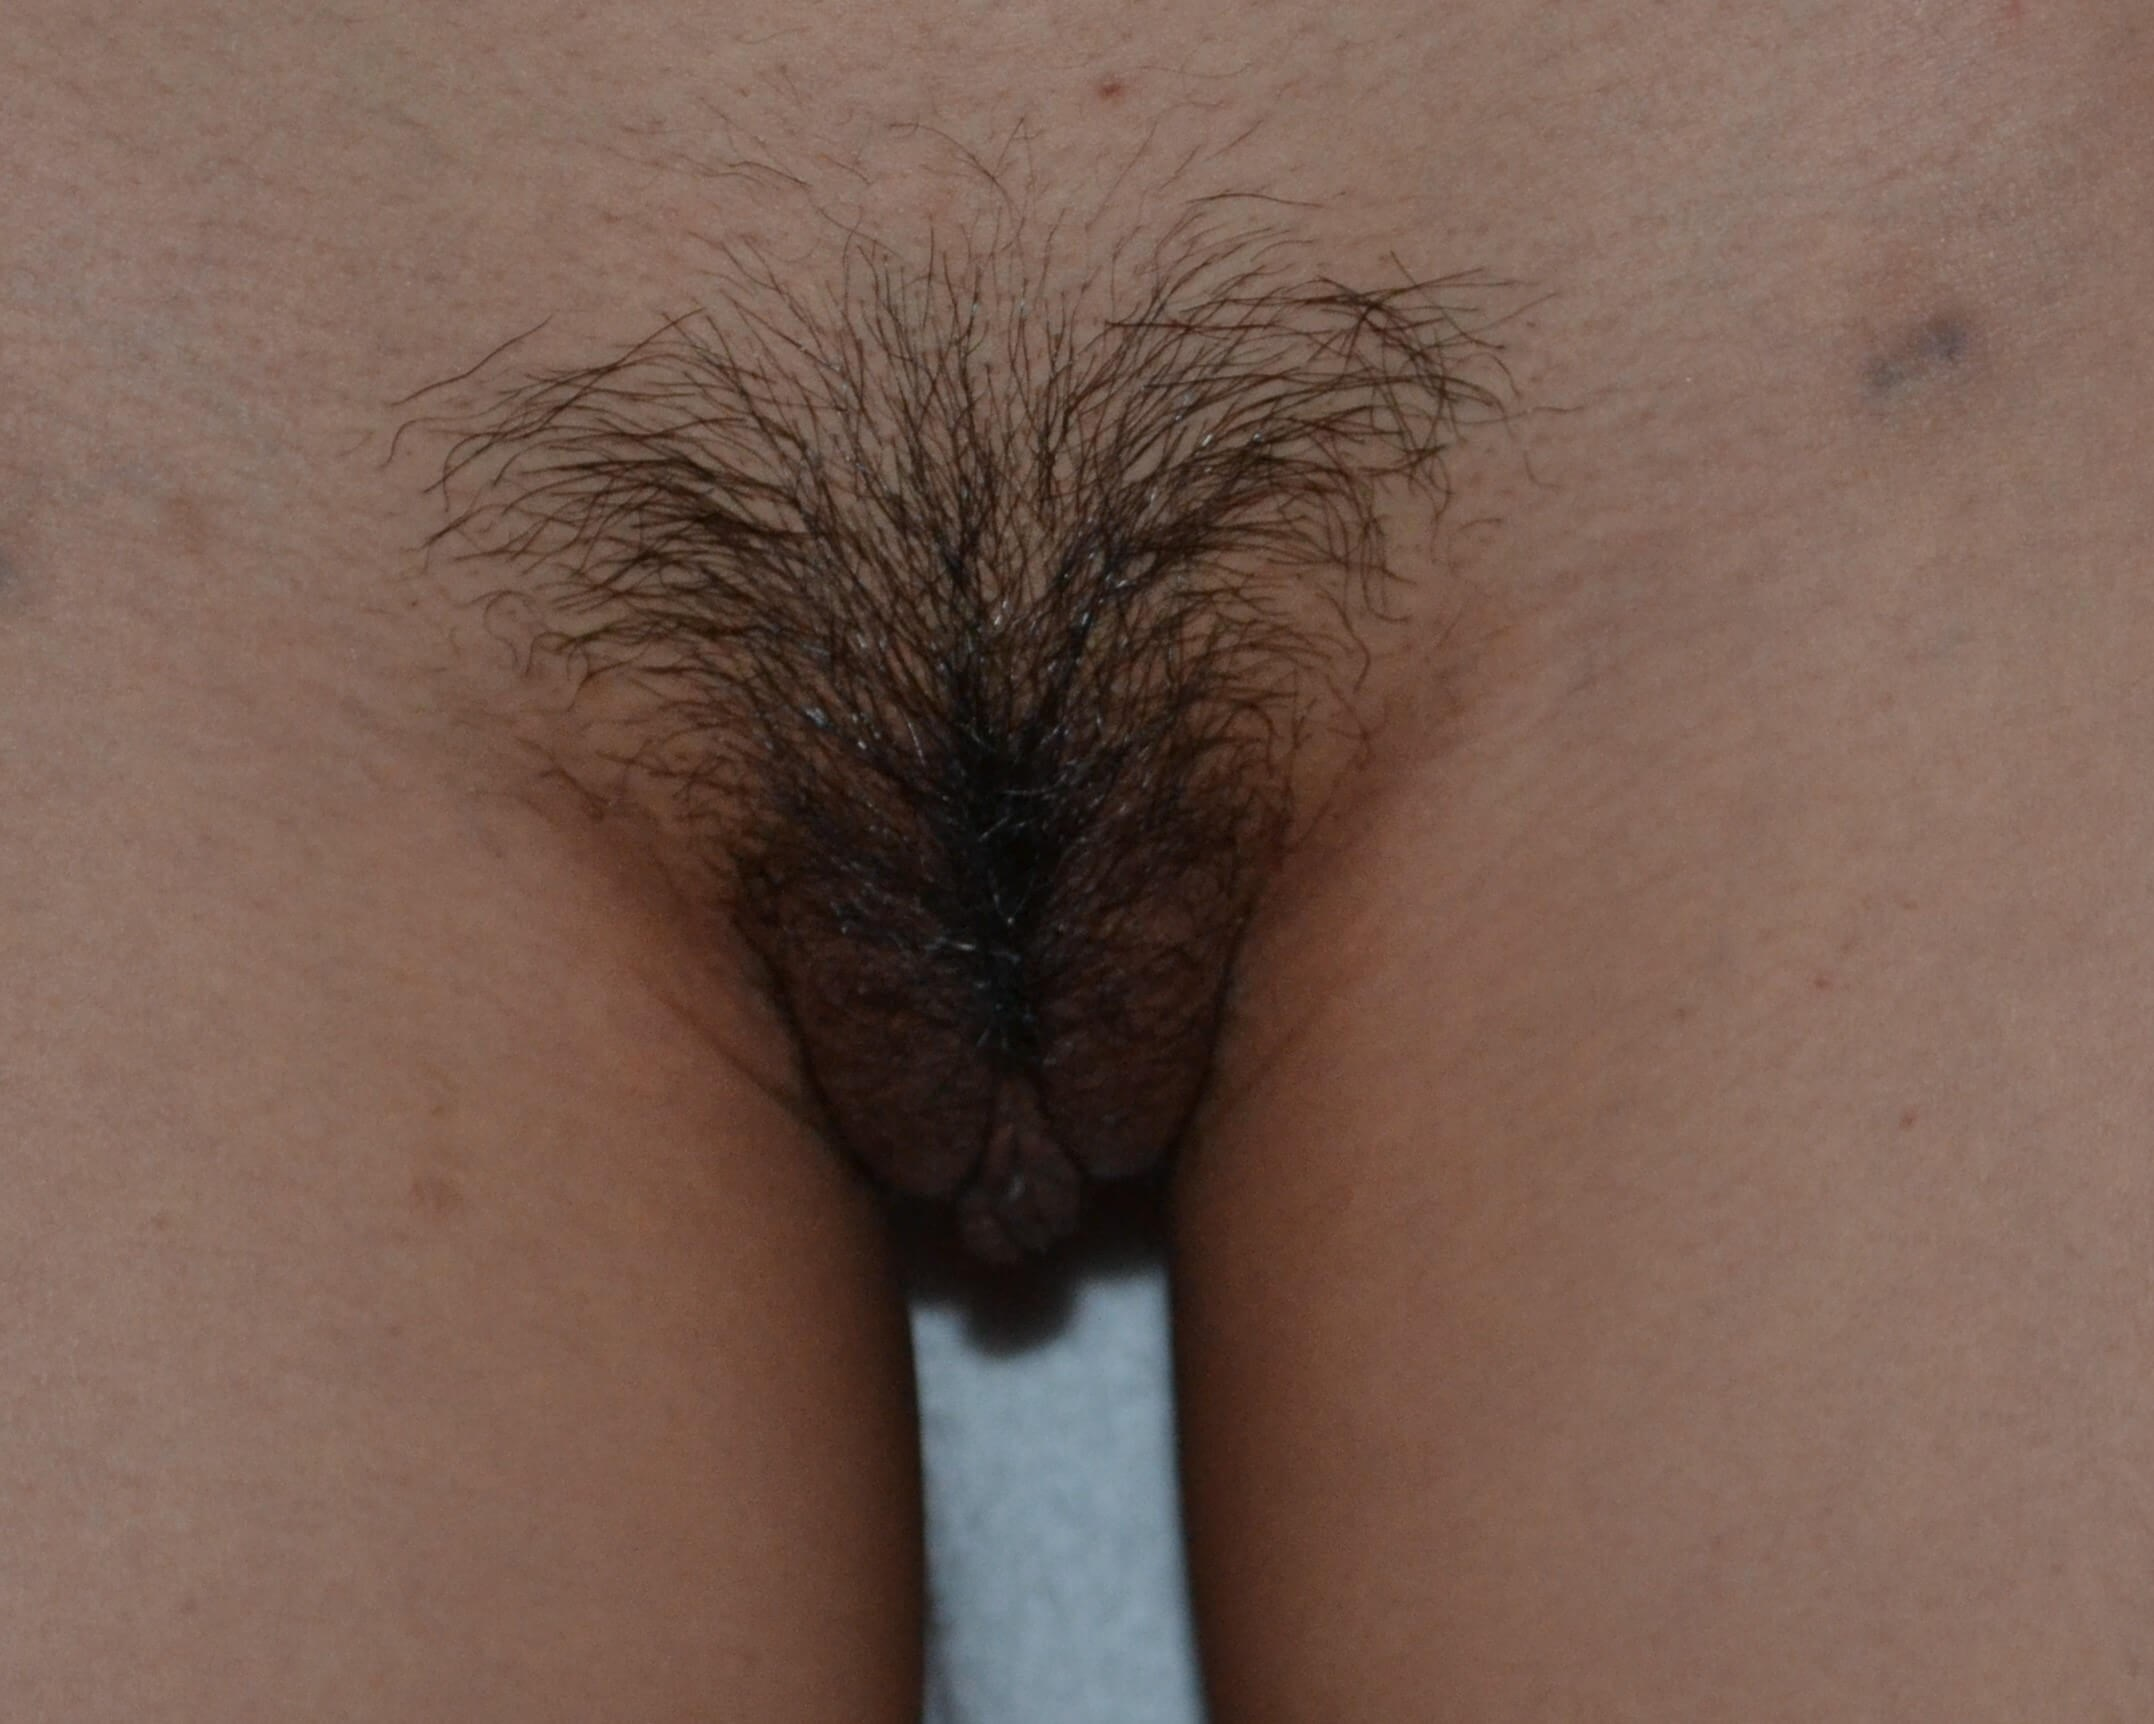 Labiaplasty Before